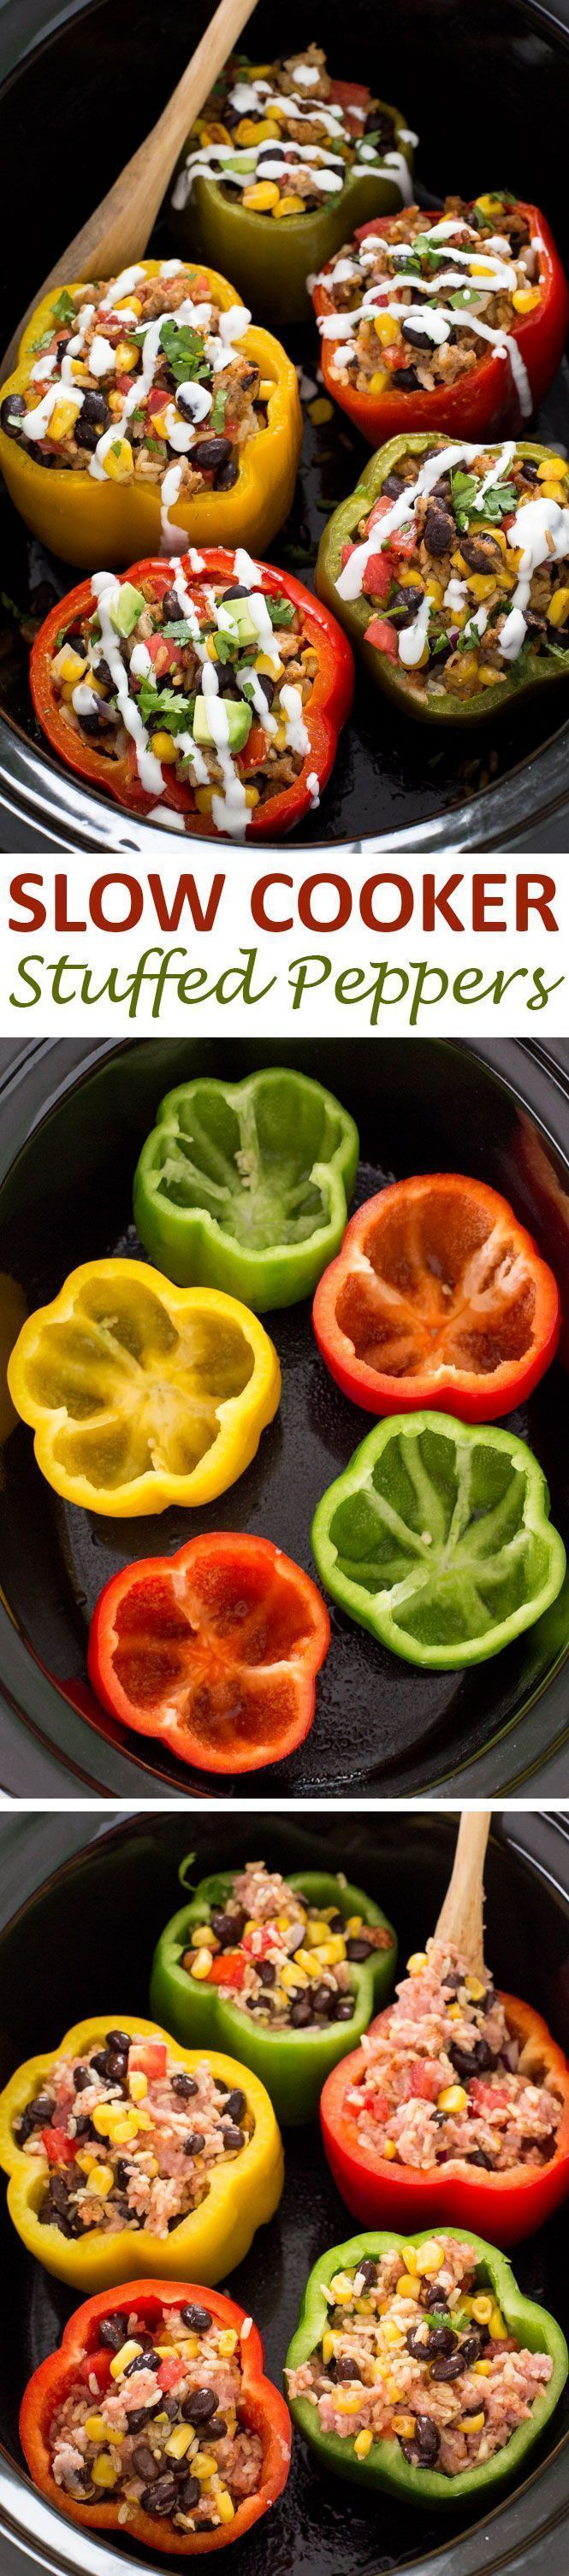 Mexican Slow Cooker Stuffed Peppers. Loaded with enchilada sauce, black beans and corn